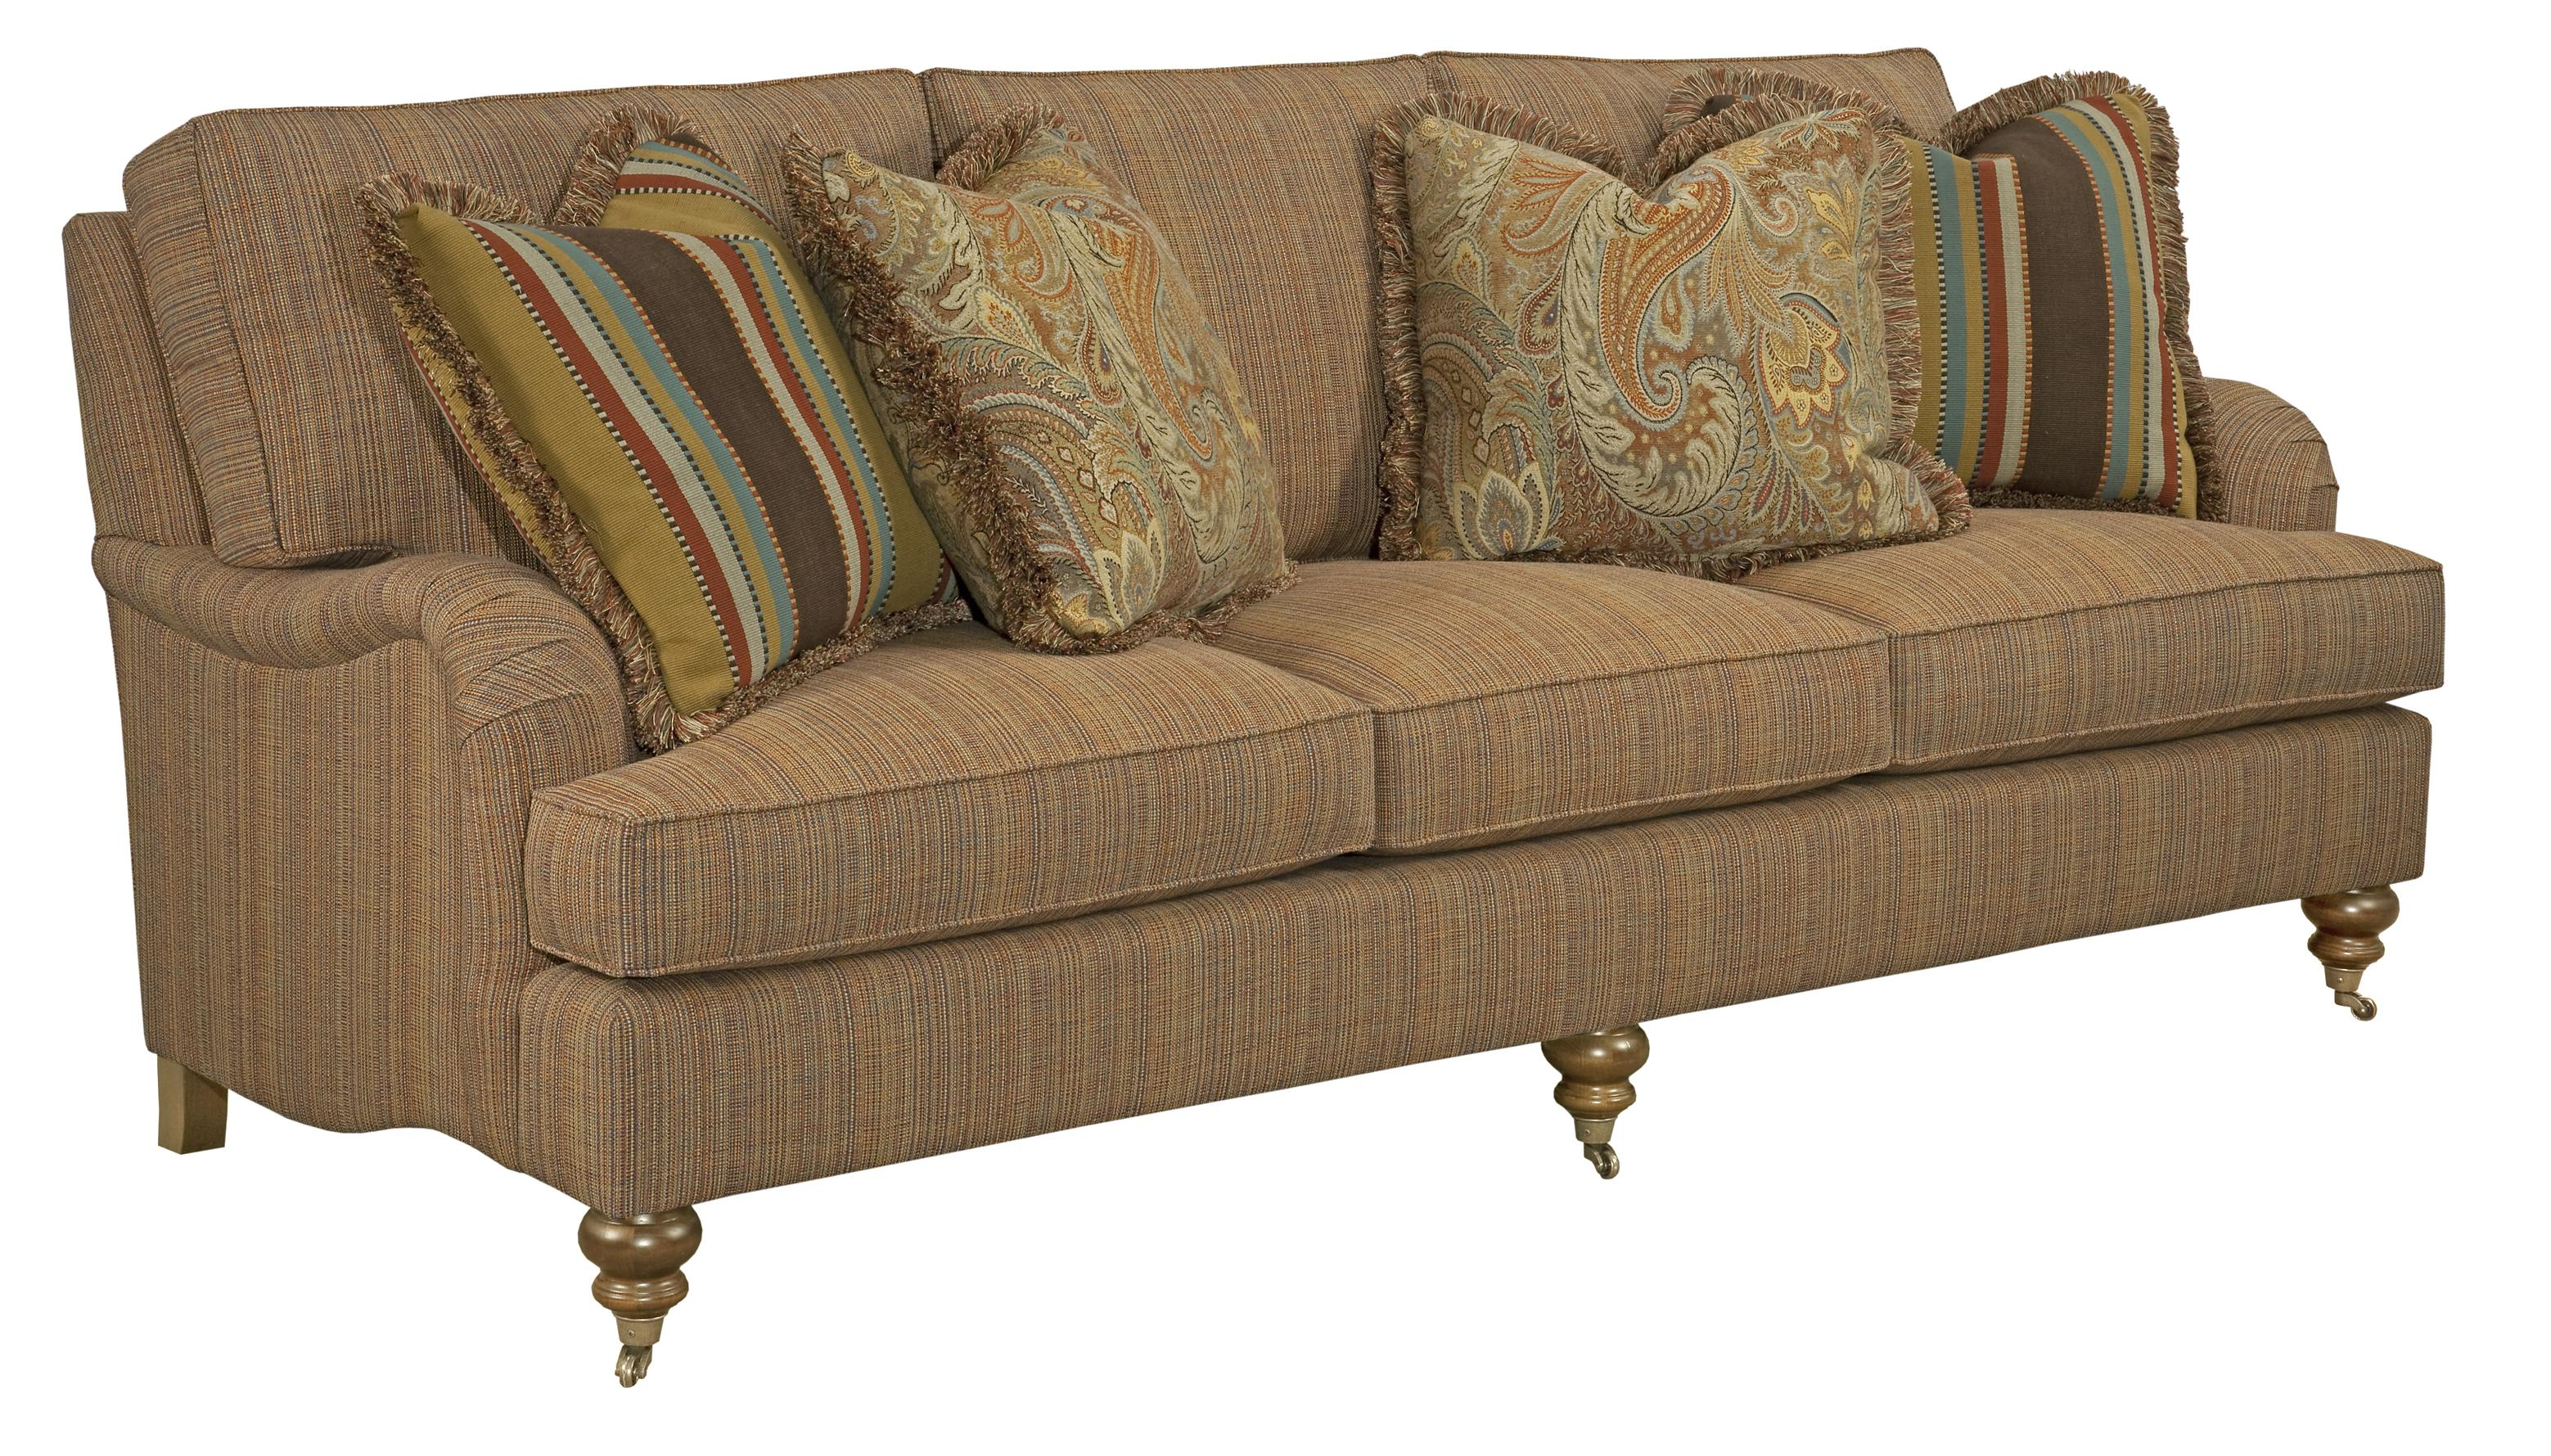 Greenwich 3 Over 3 Sofa by Kincaid Furniture at Johnny Janosik